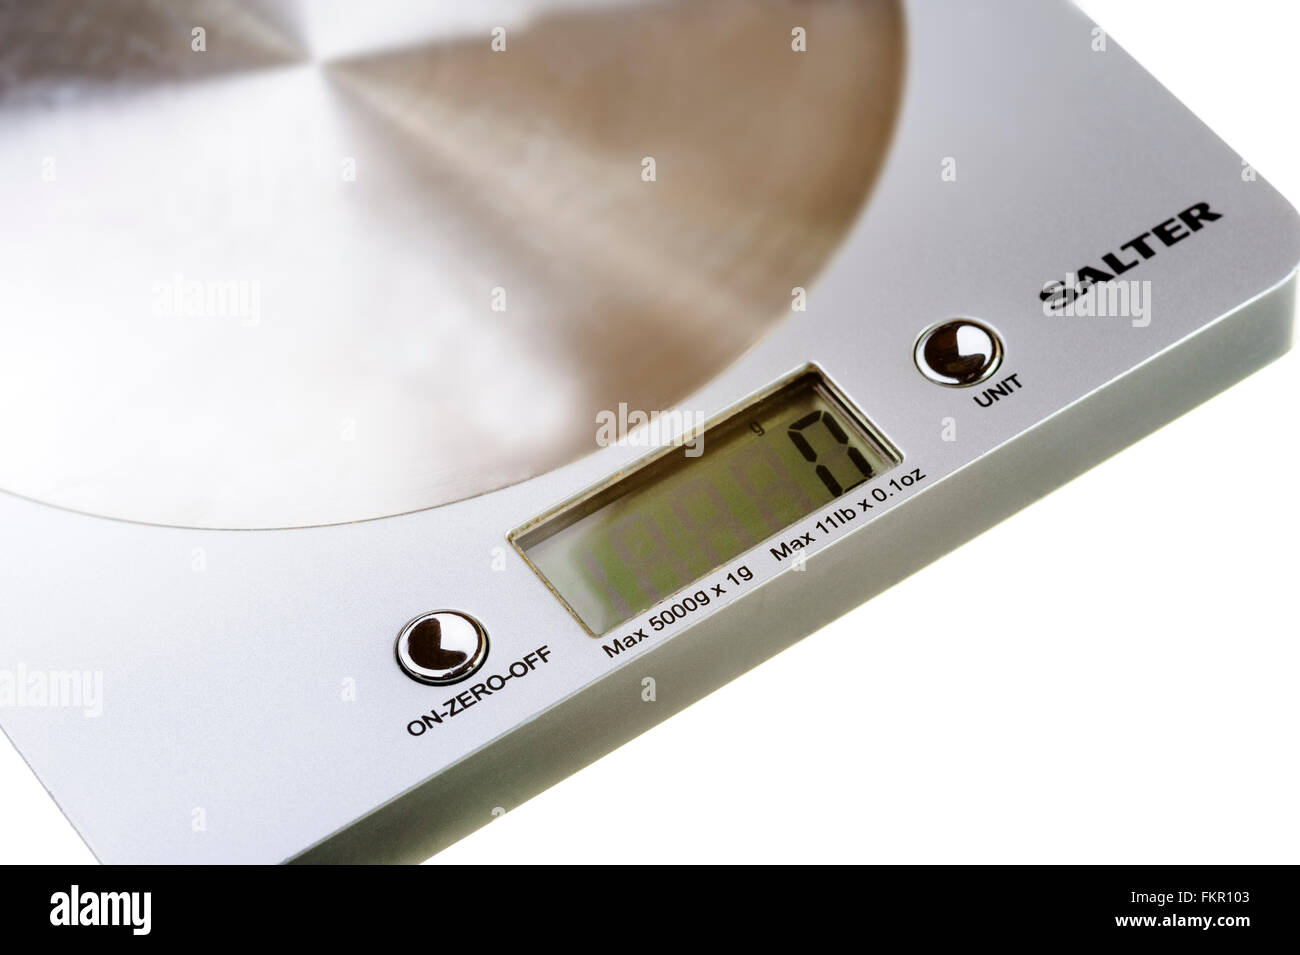 Close up of digital kitchen scales. - Stock Image